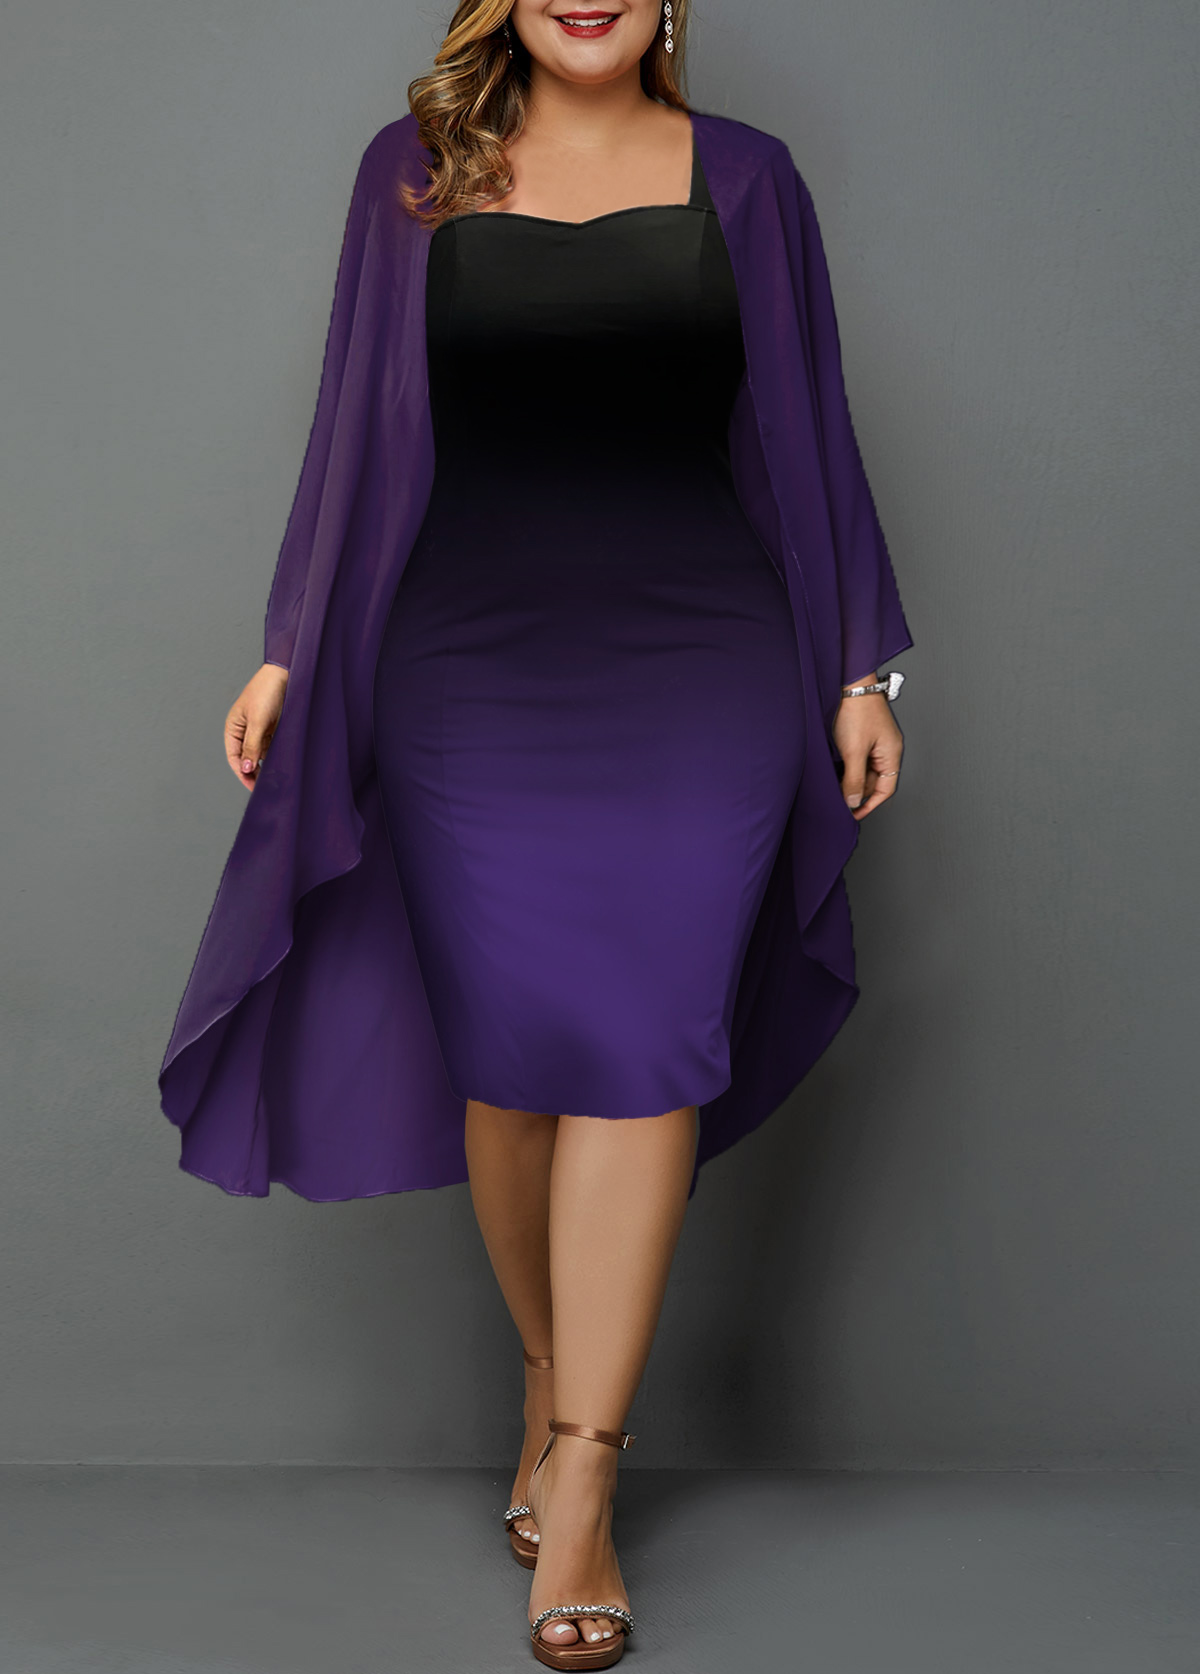 Plus Size Chiffon Cardigan and Gradient Sheath Dress